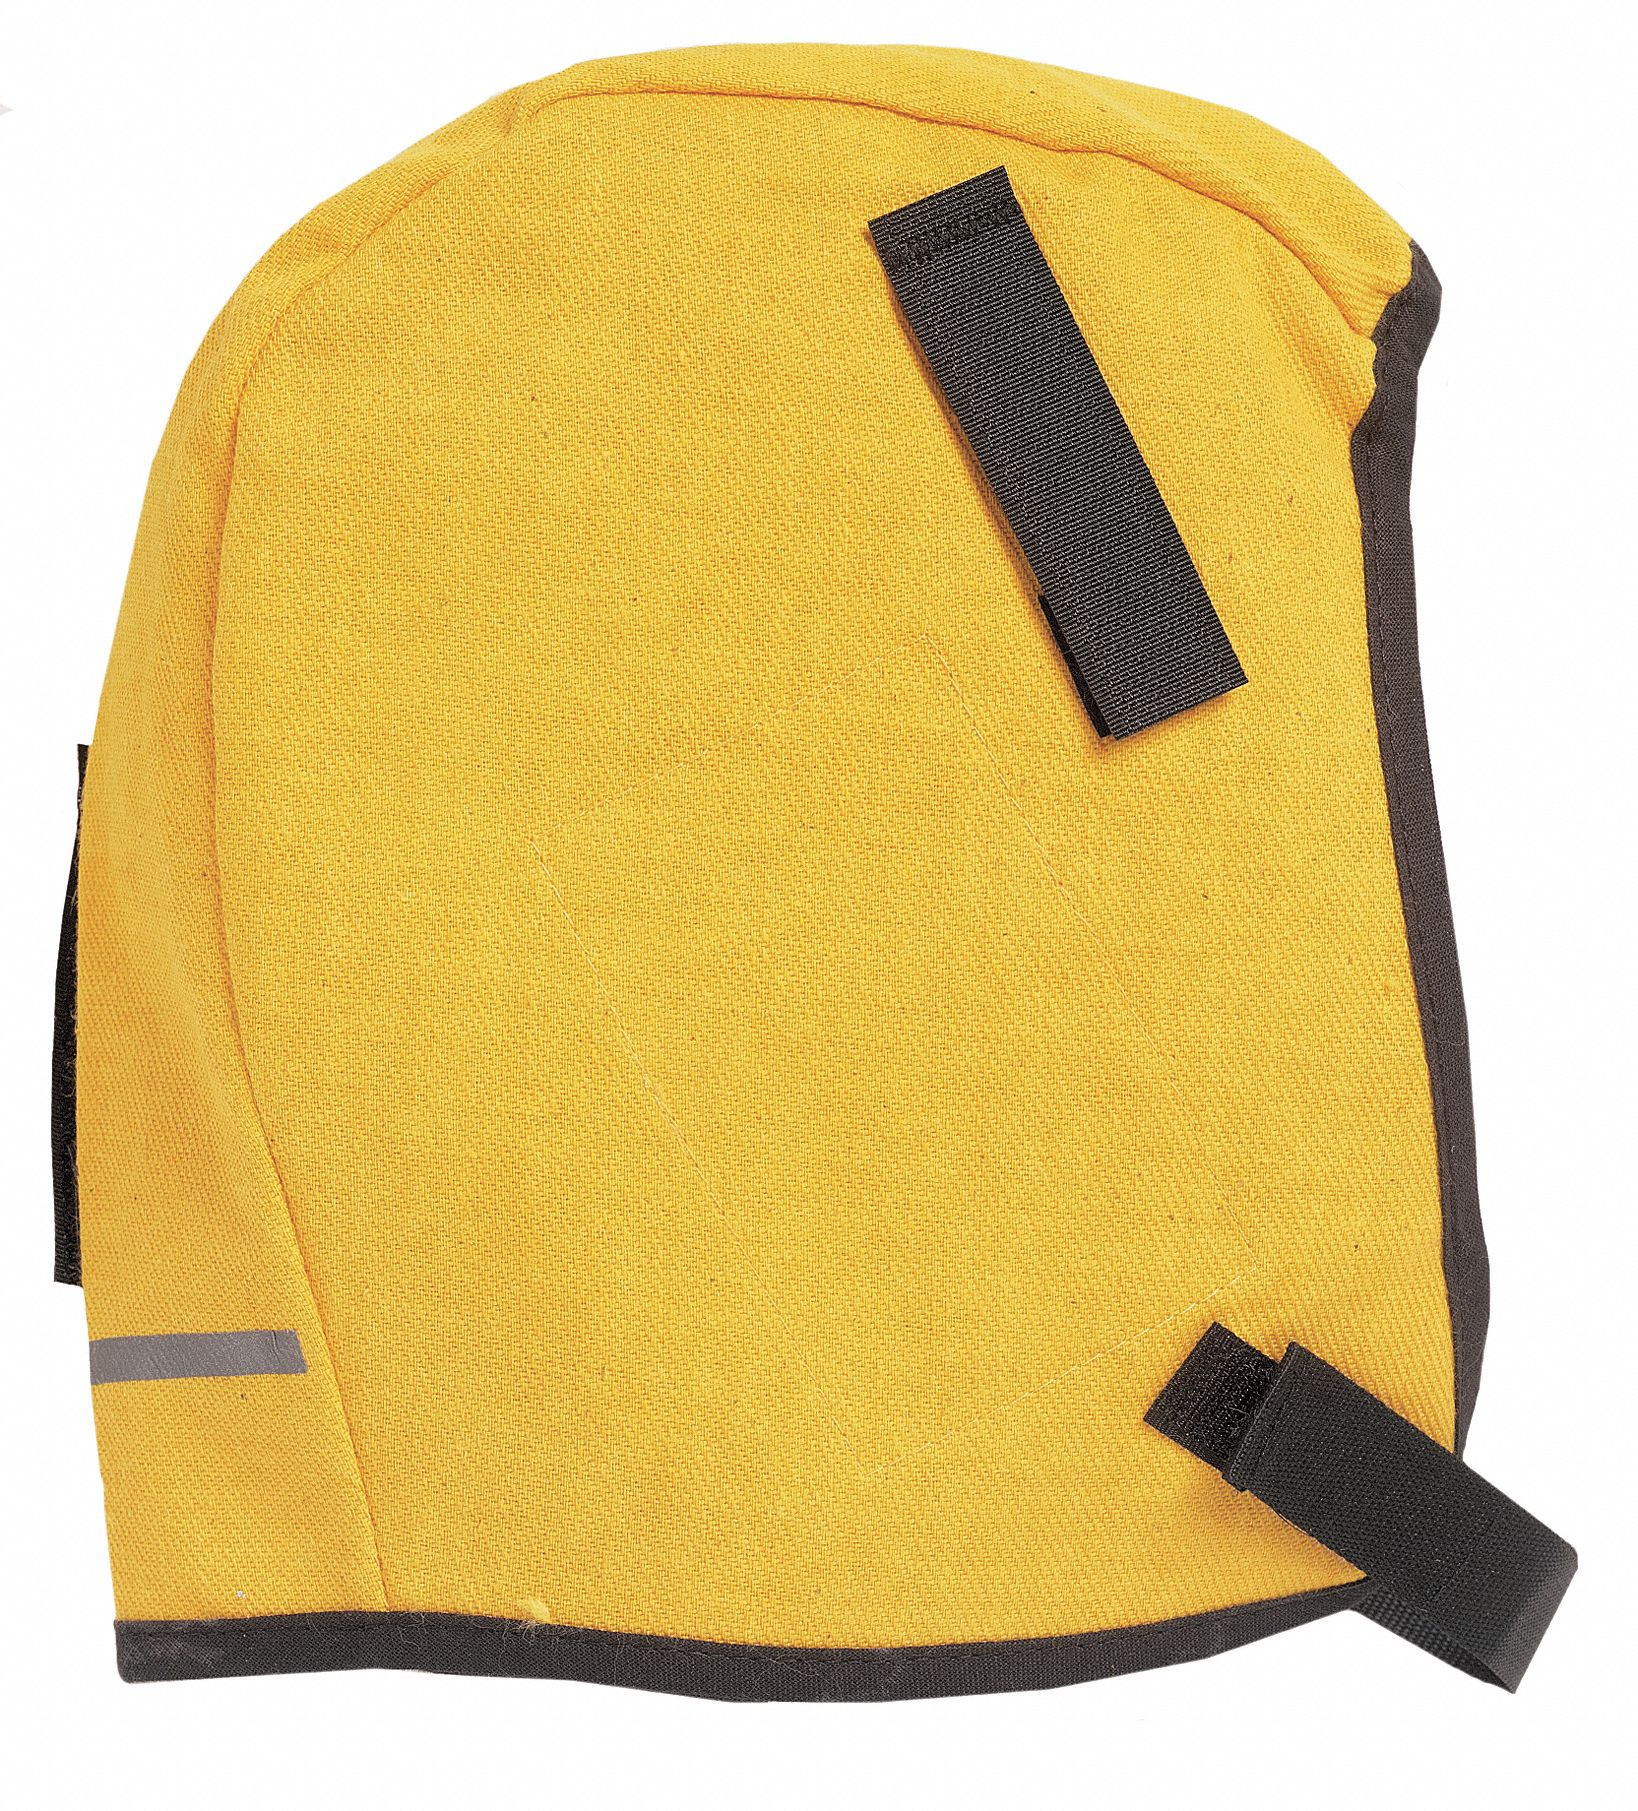 Flame Resistant Liner,  Universal Size,  Over The Head,  Gold,  Cotton,  Covers Head and Ears